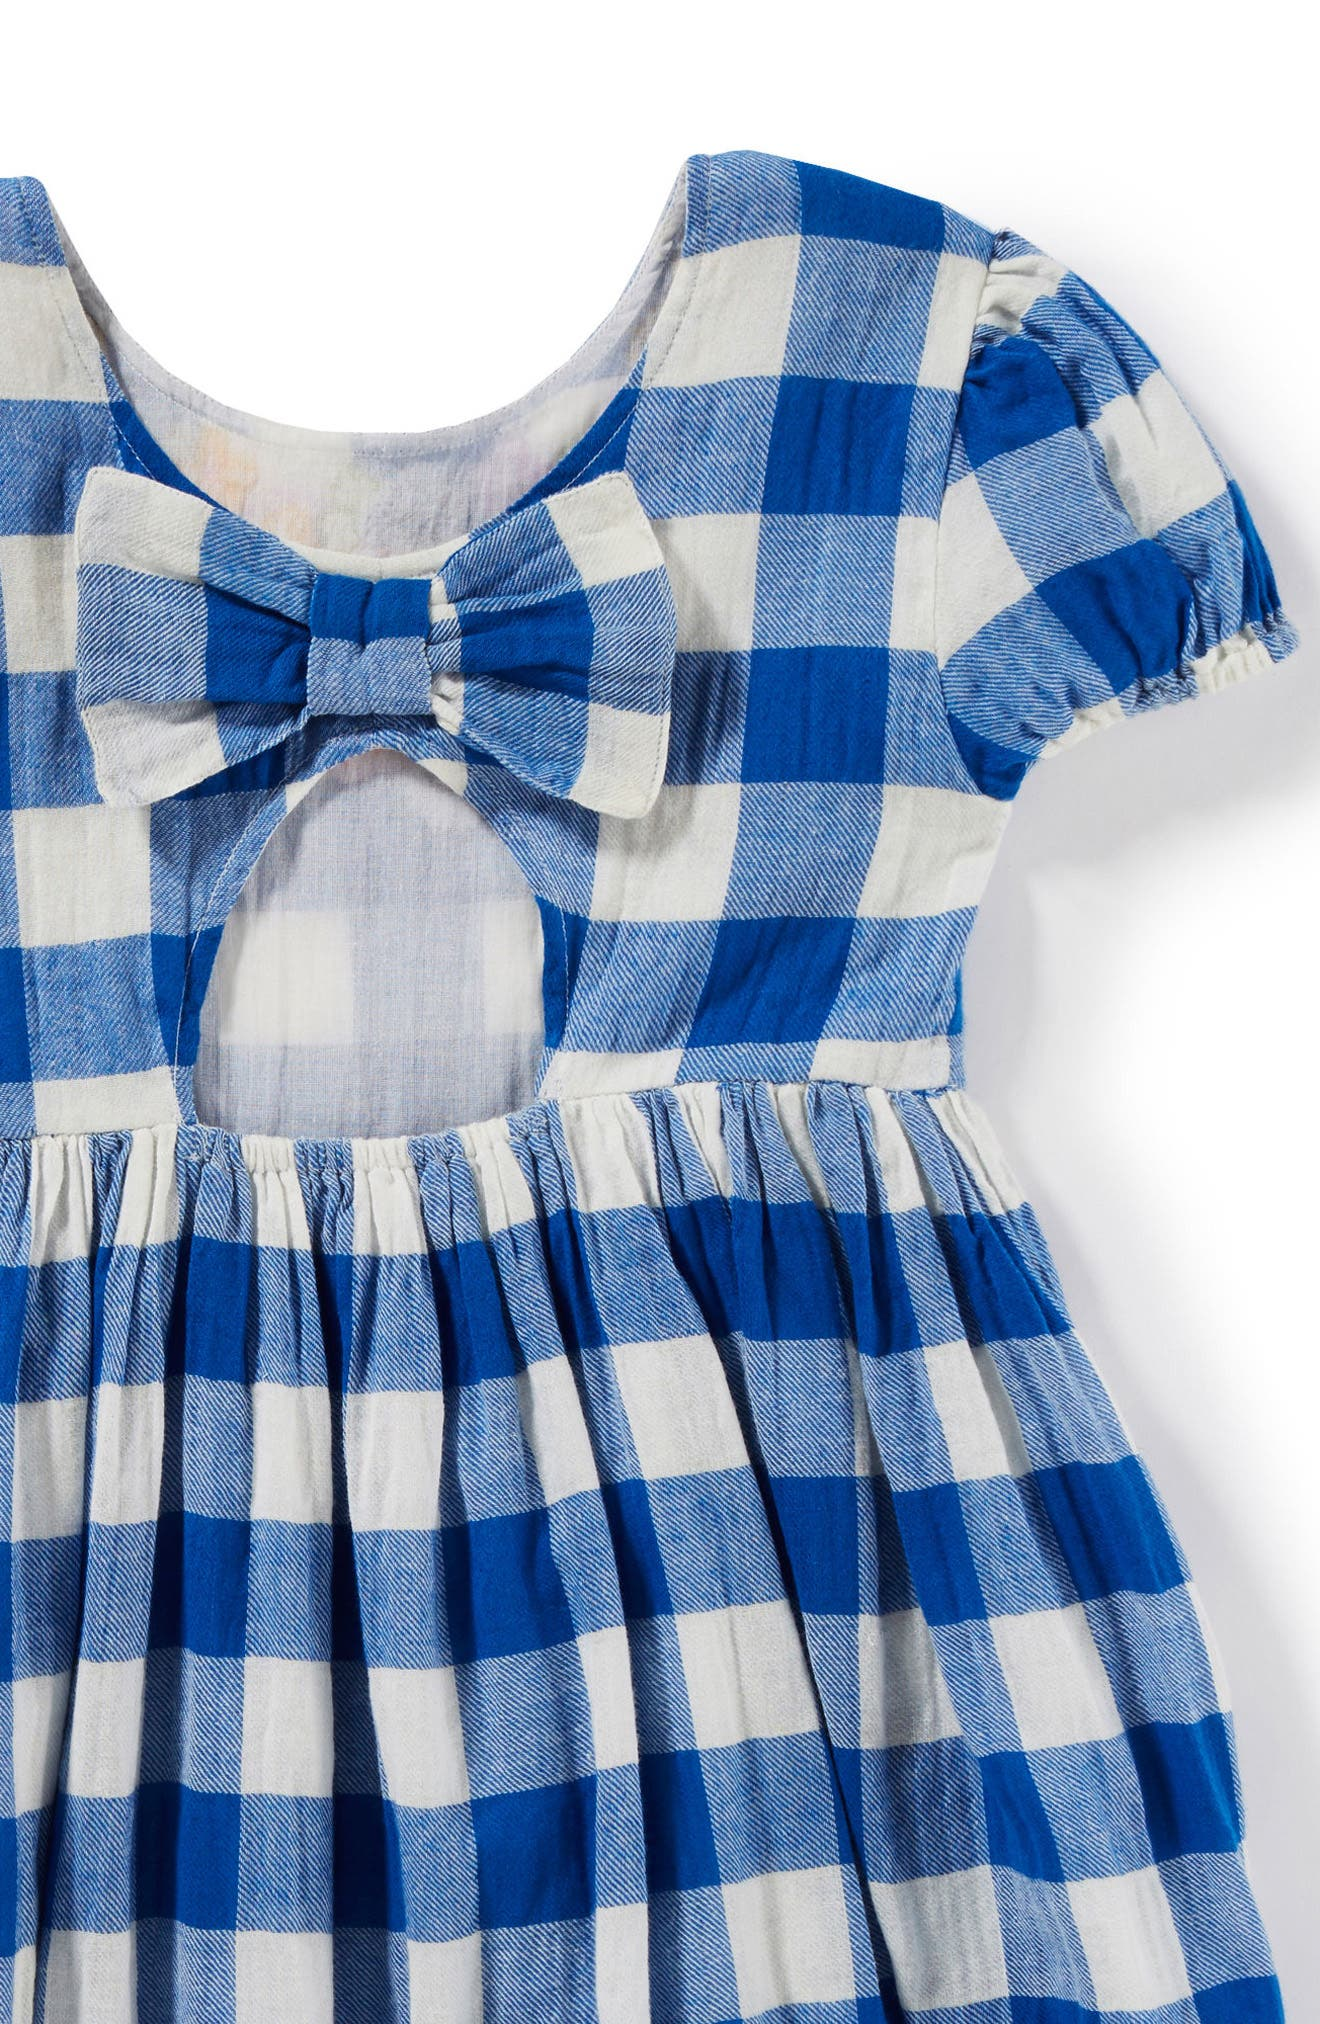 Peek Penelope Embroidered Check Dress,                             Alternate thumbnail 2, color,                             400